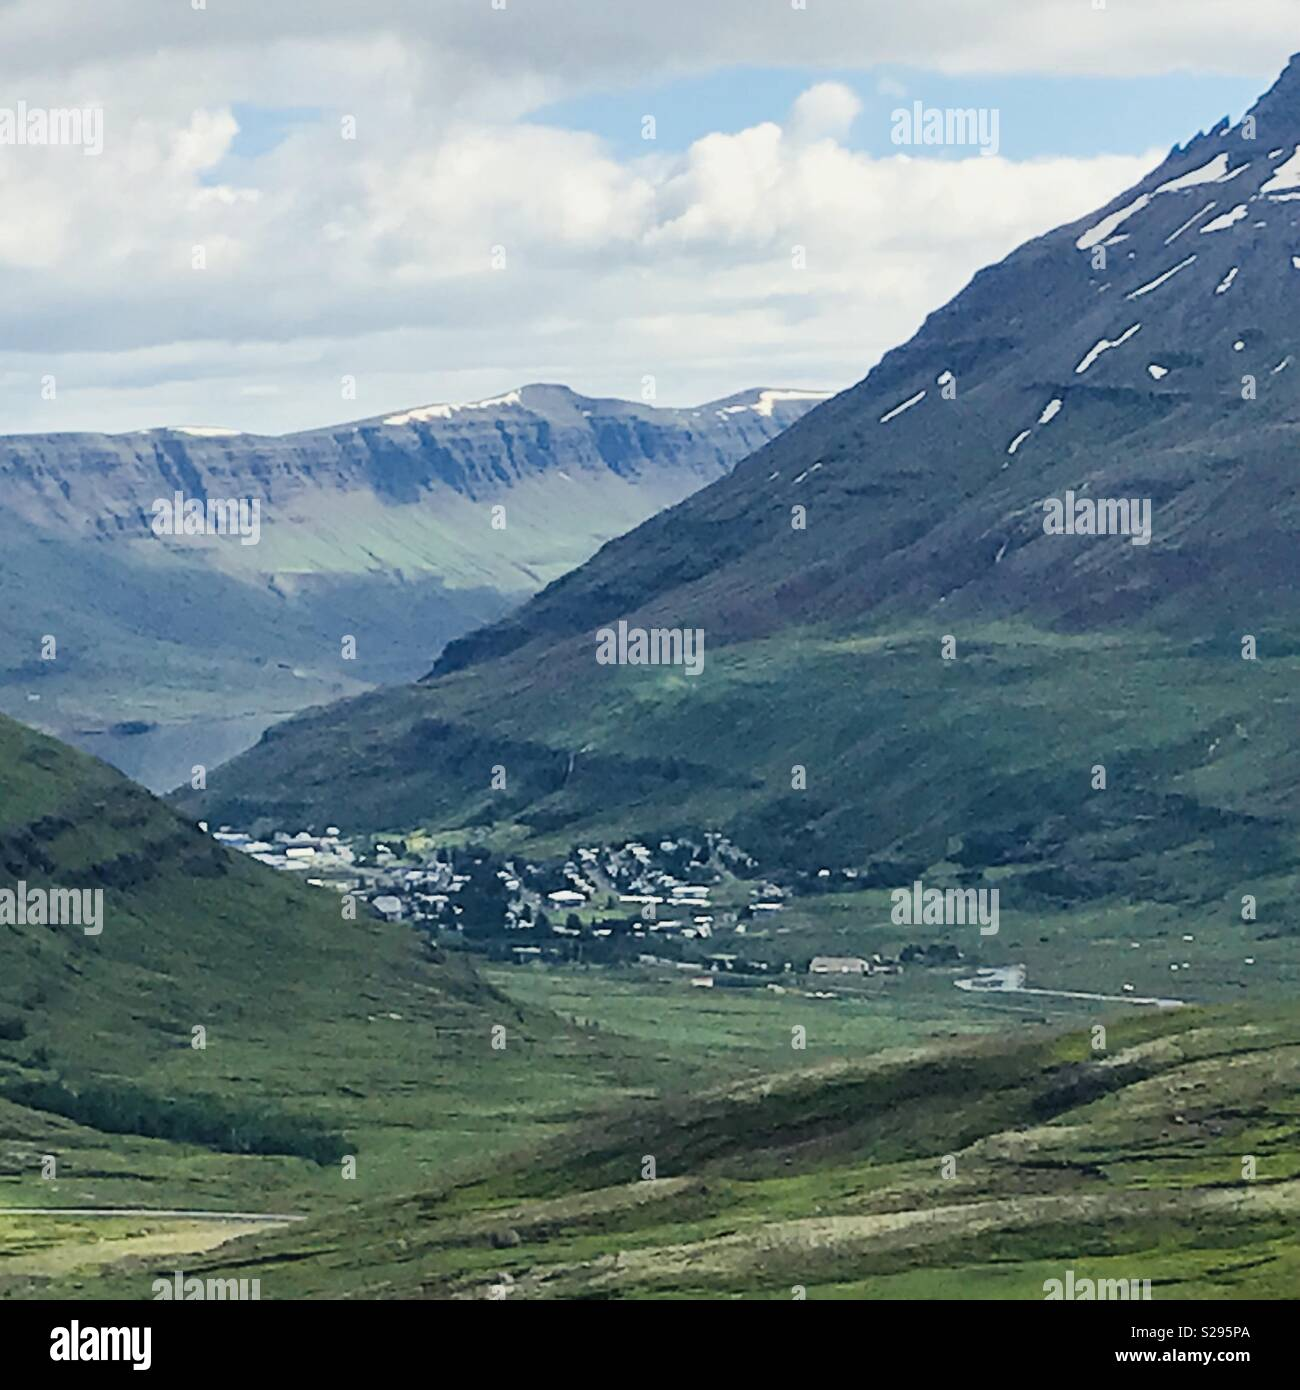 A view of the town of Seydisfjordur, Iceland - Stock Image